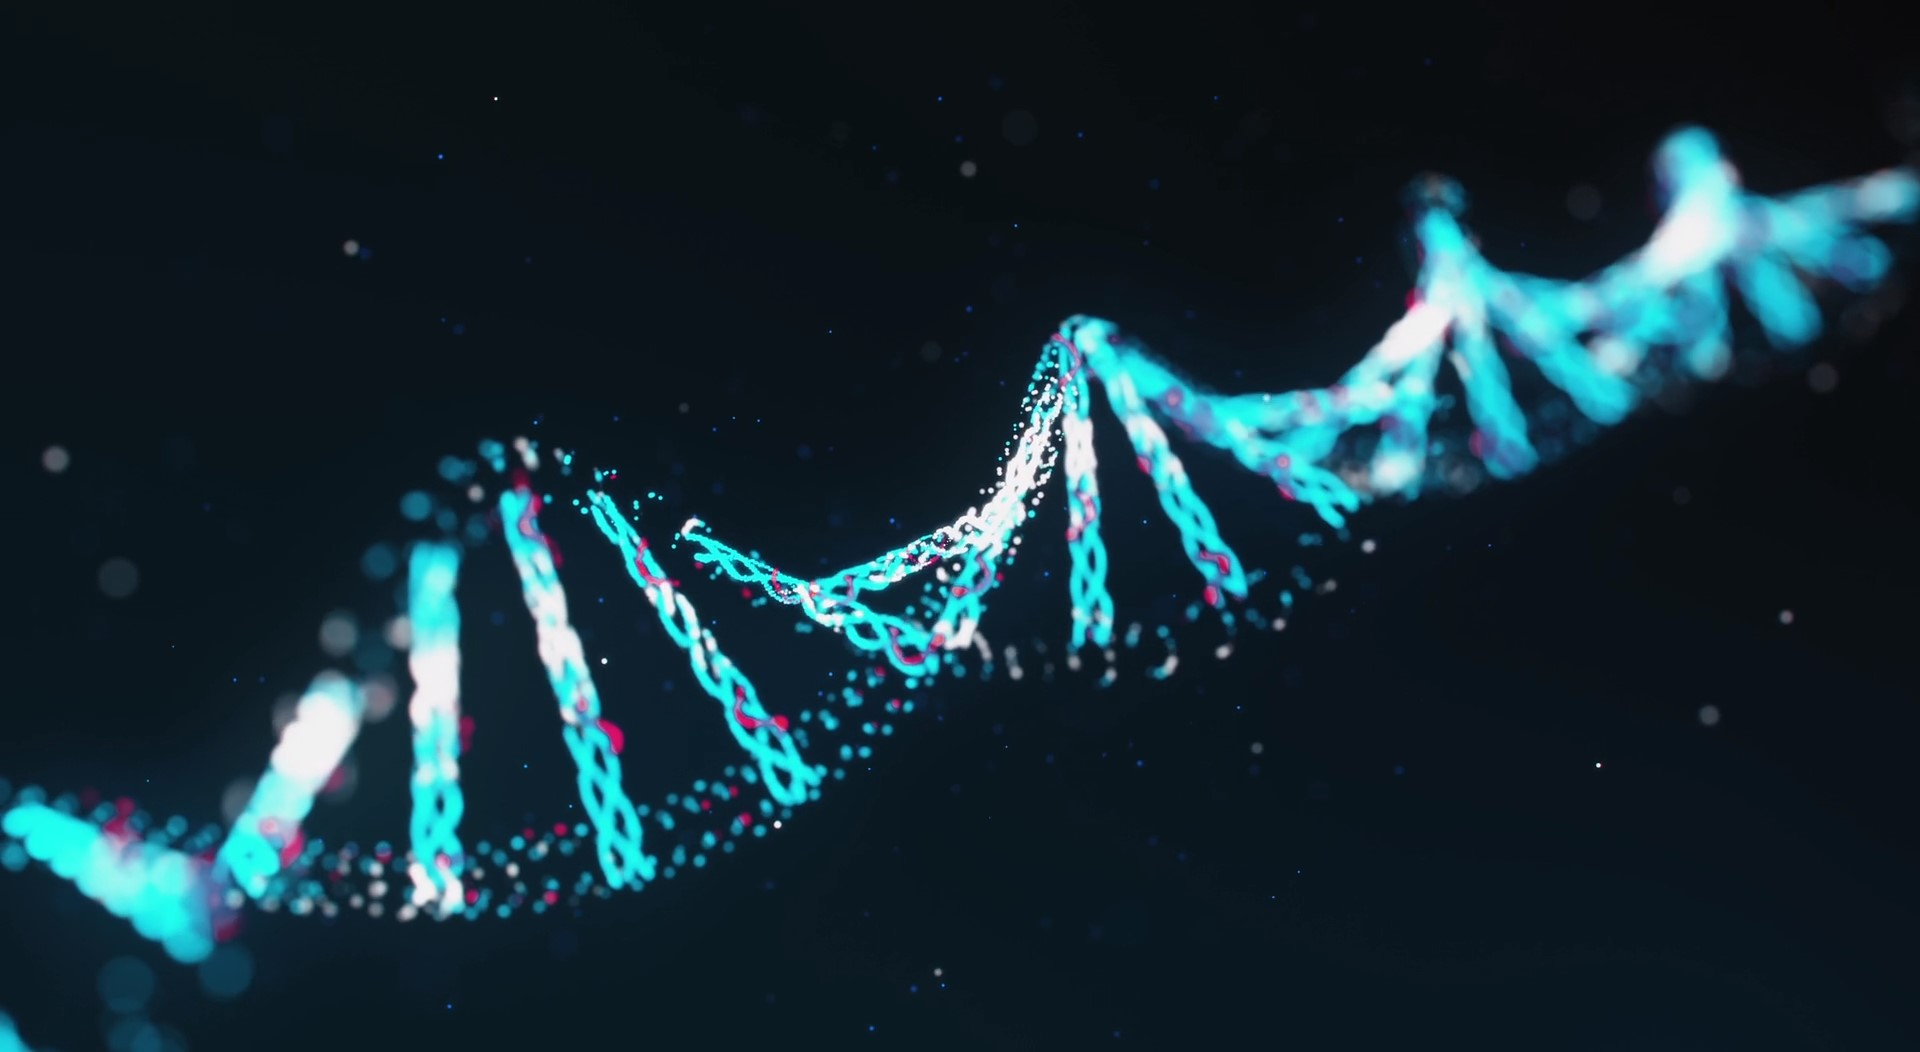 The Genomics Bottleneck: Who holds the solution?